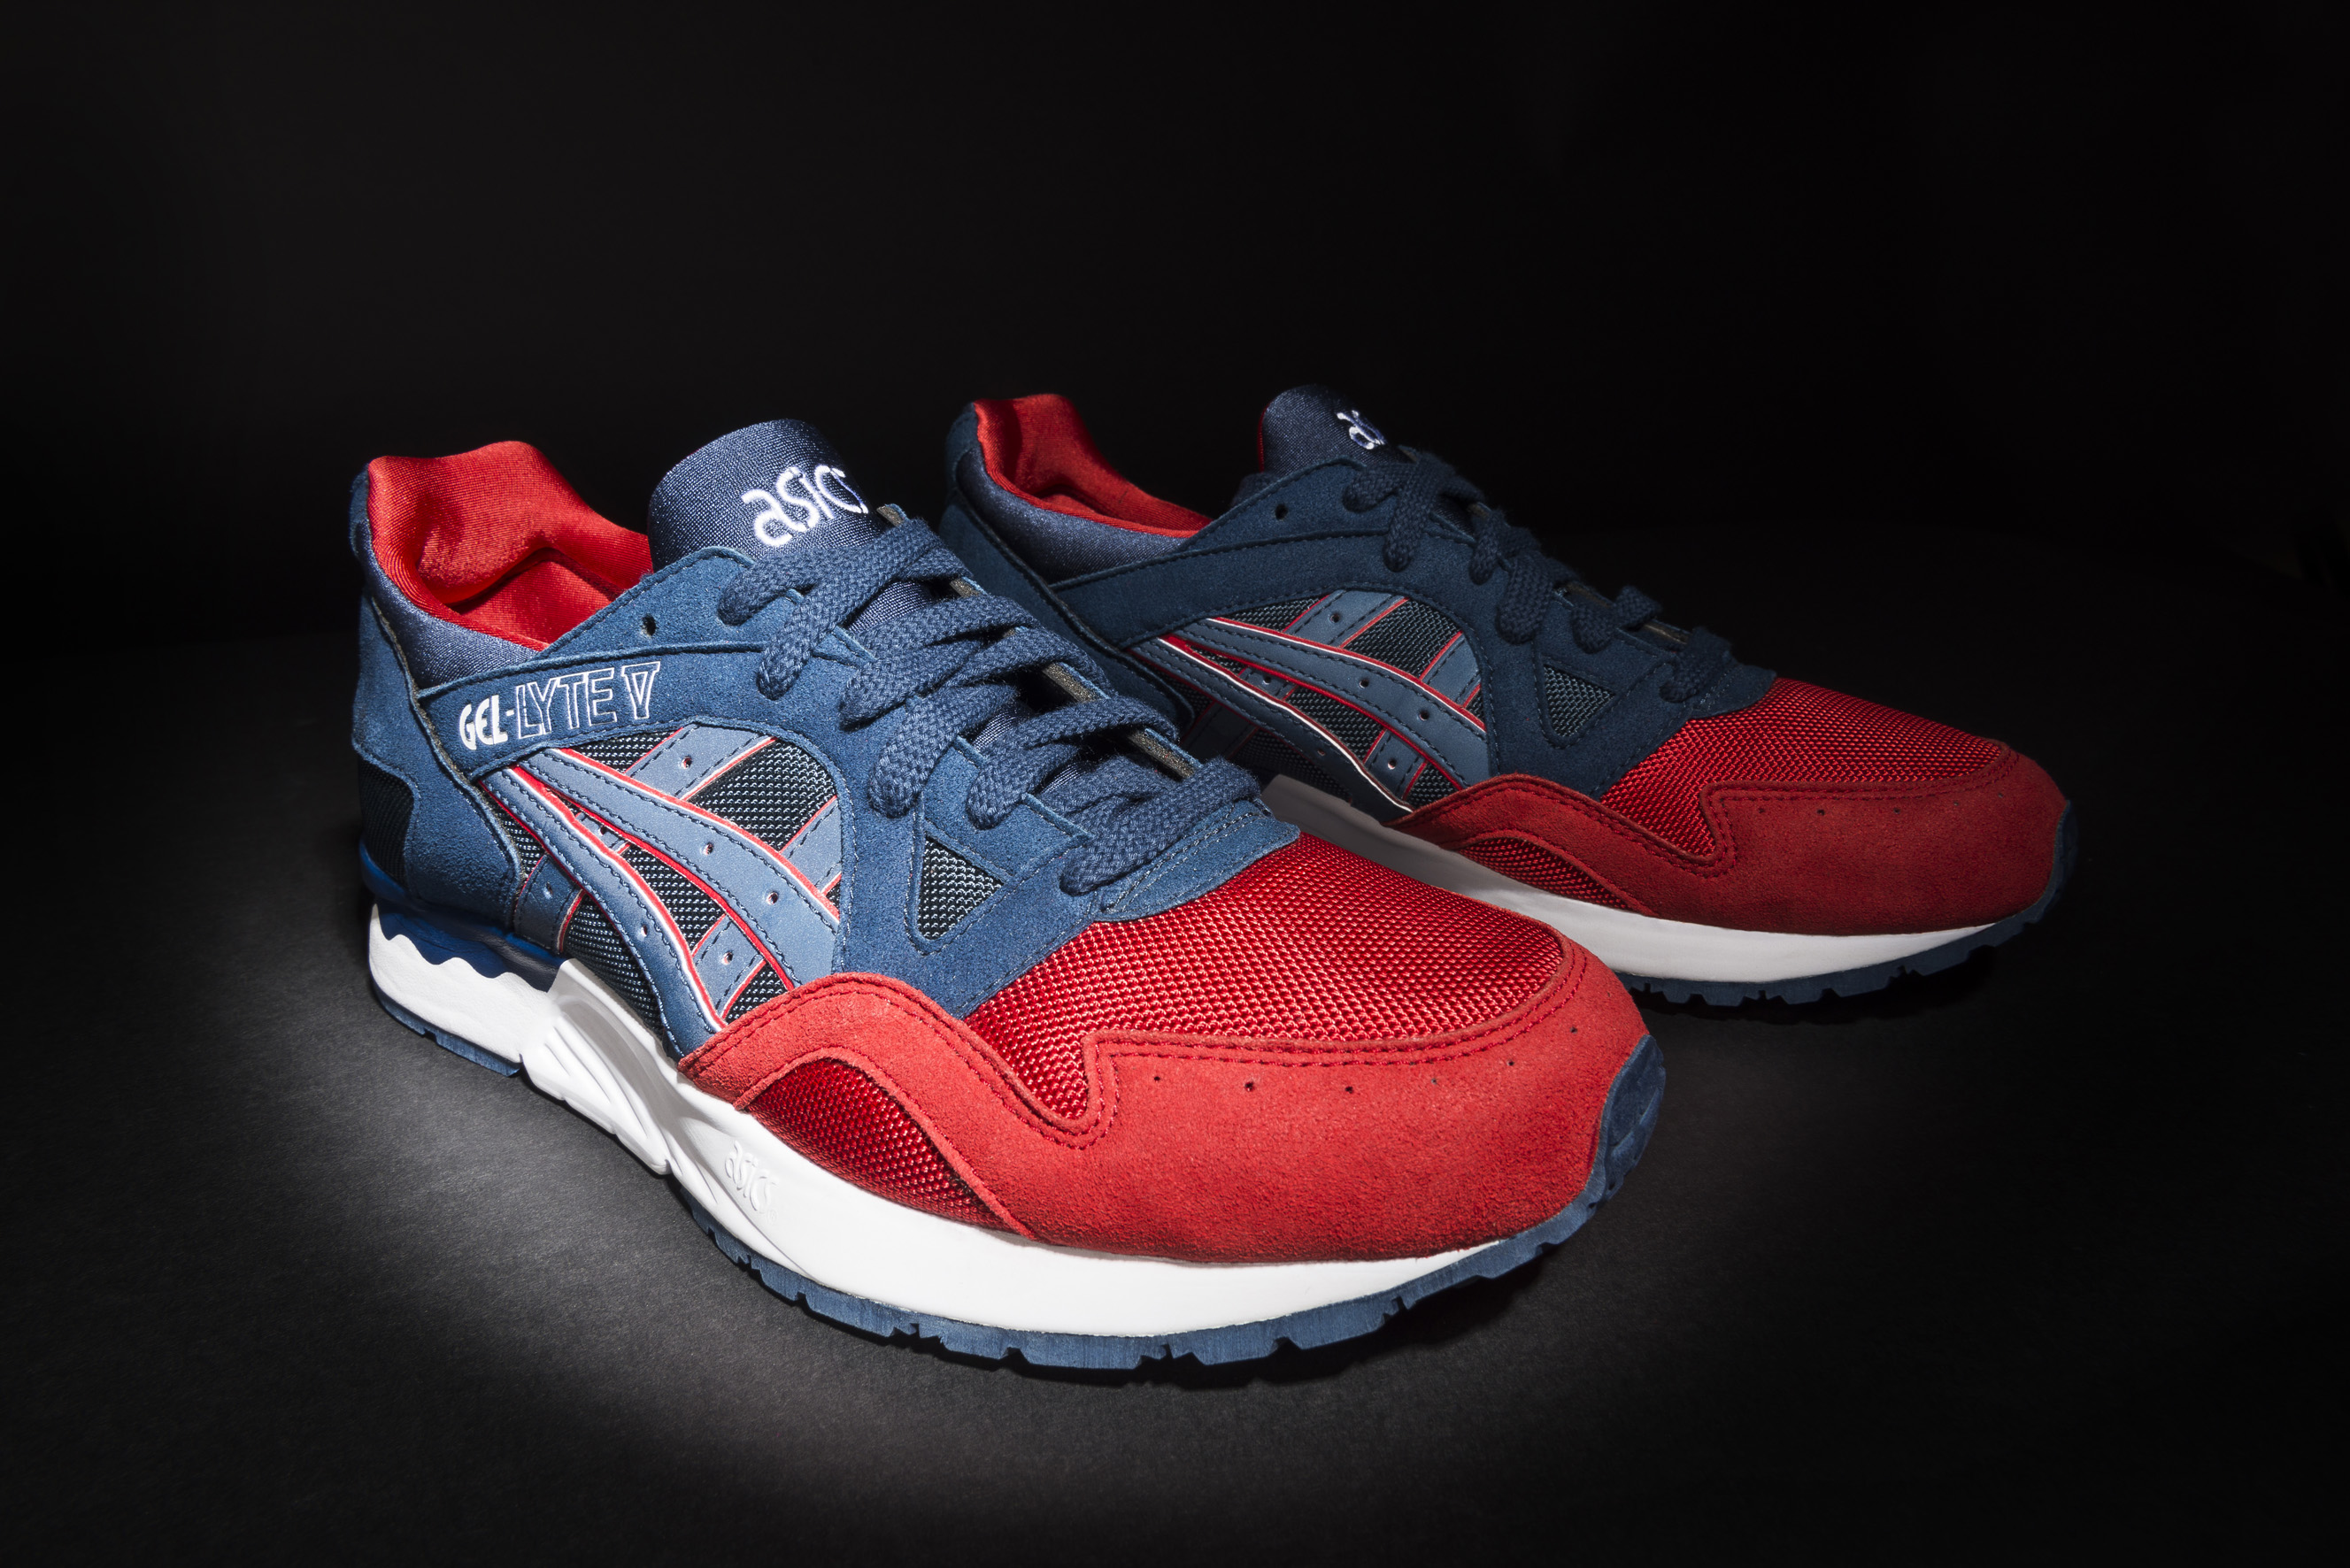 asics gel lyte v foot locker exclusive